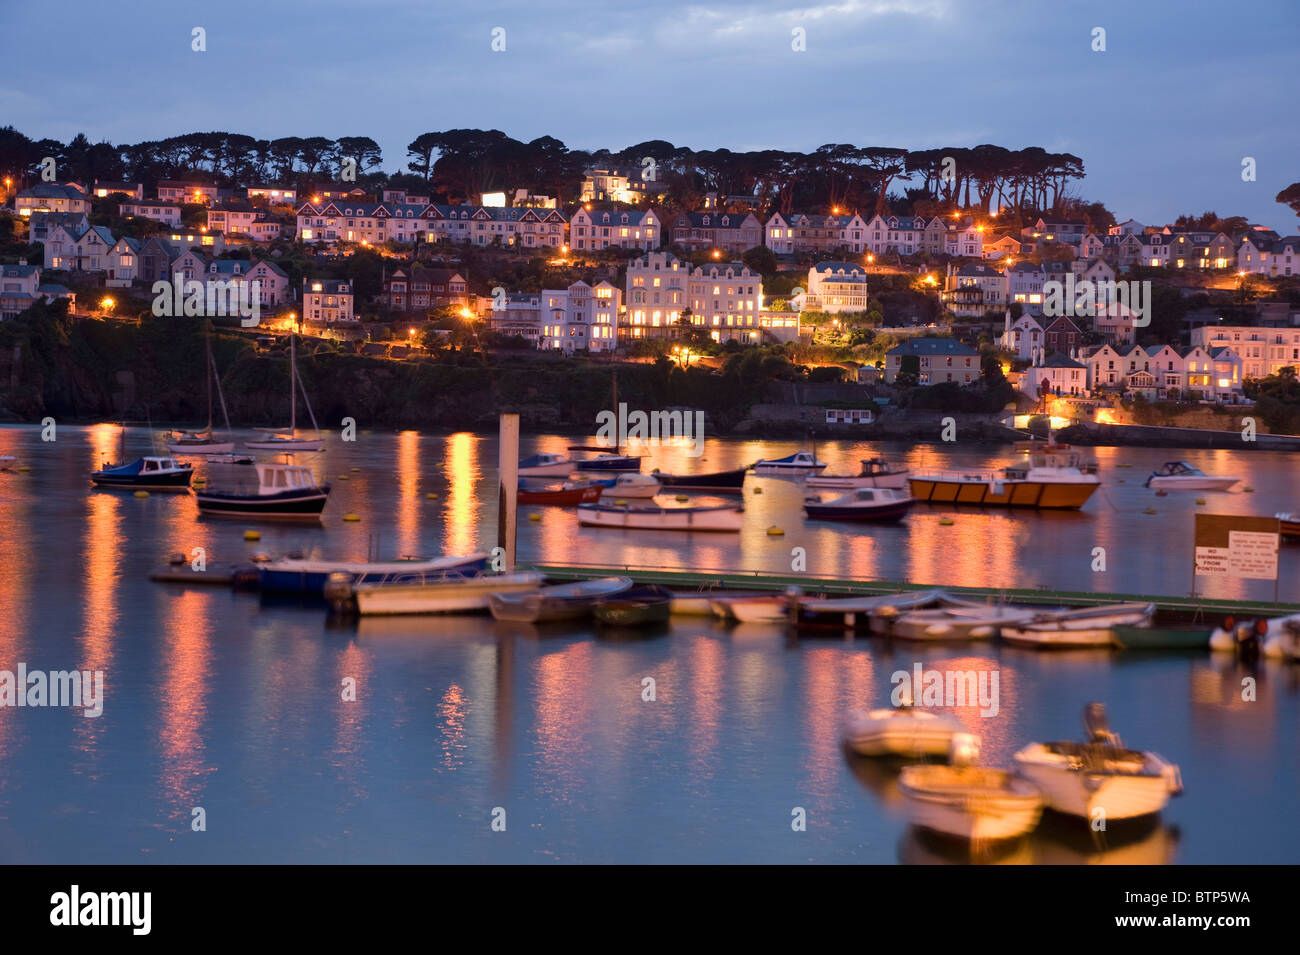 Pol Ruan, Fishing Town, at Dusk, Cornwall, UK - Stock Image